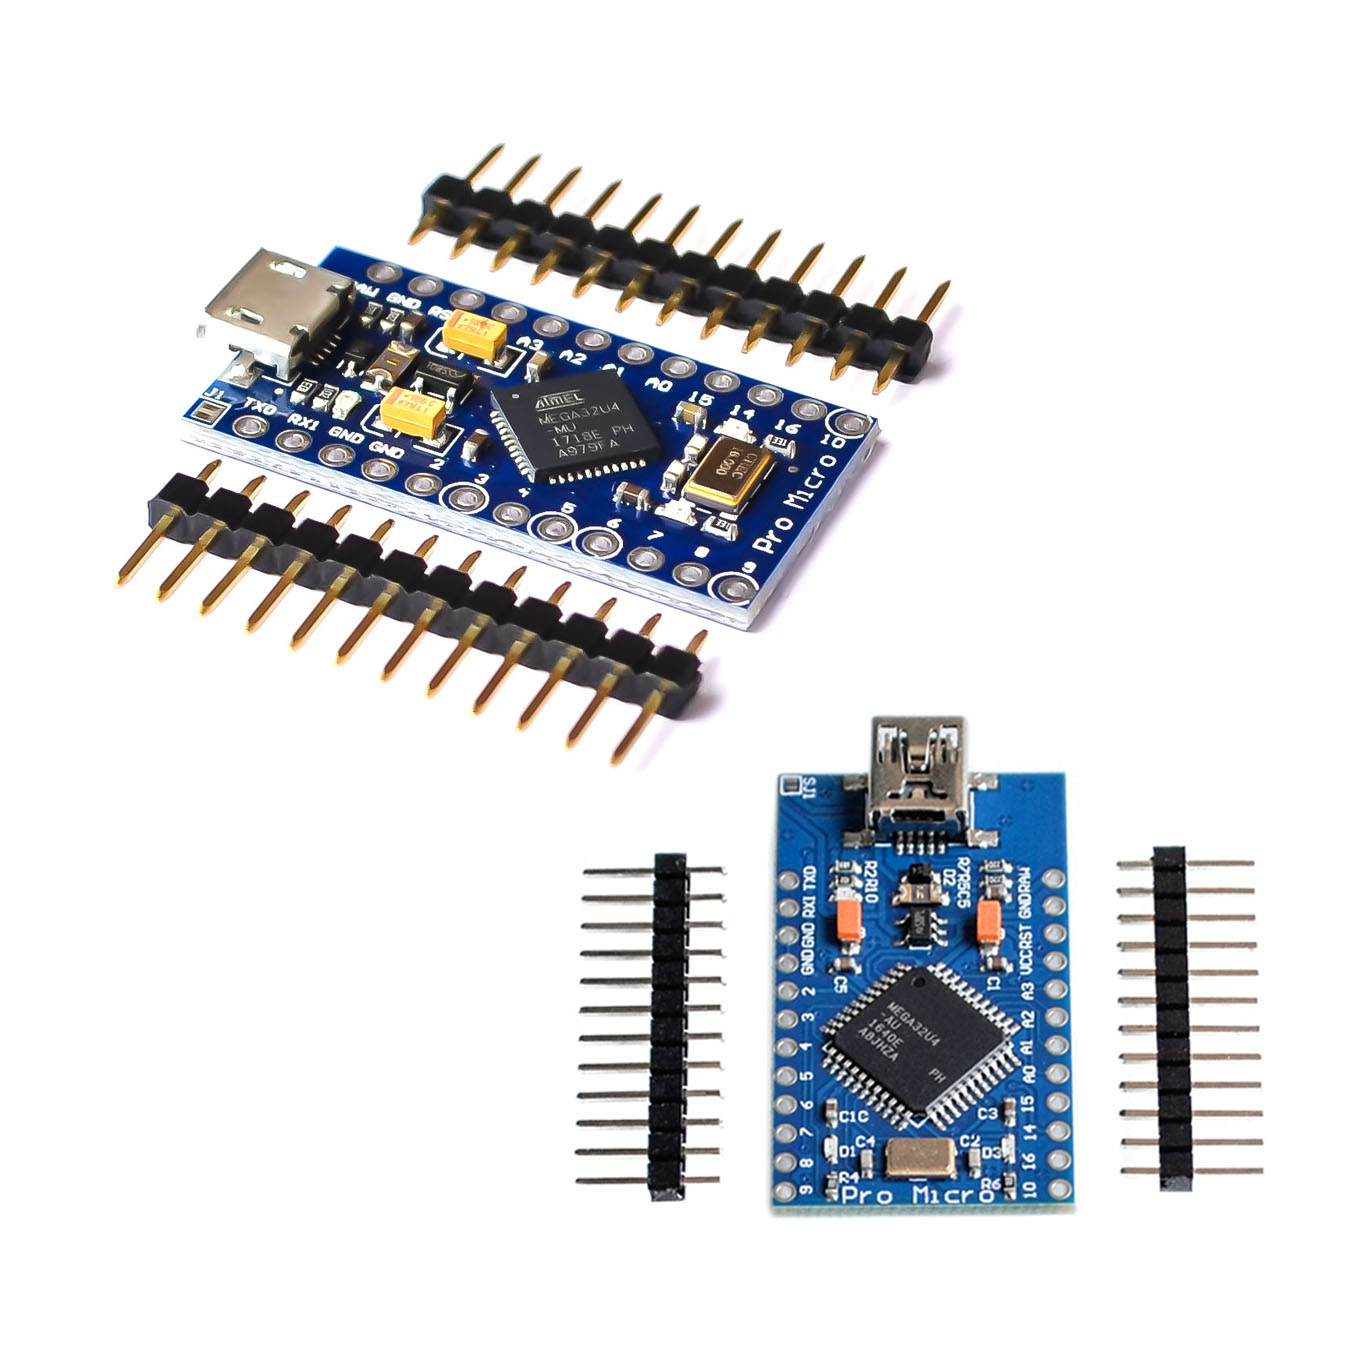 new-pro-micro-for-font-b-arduino-b-font-atmega32u4-5v-16mhz-module-with-2-row-pin-header-for-leonardo-in-stock-best-quality